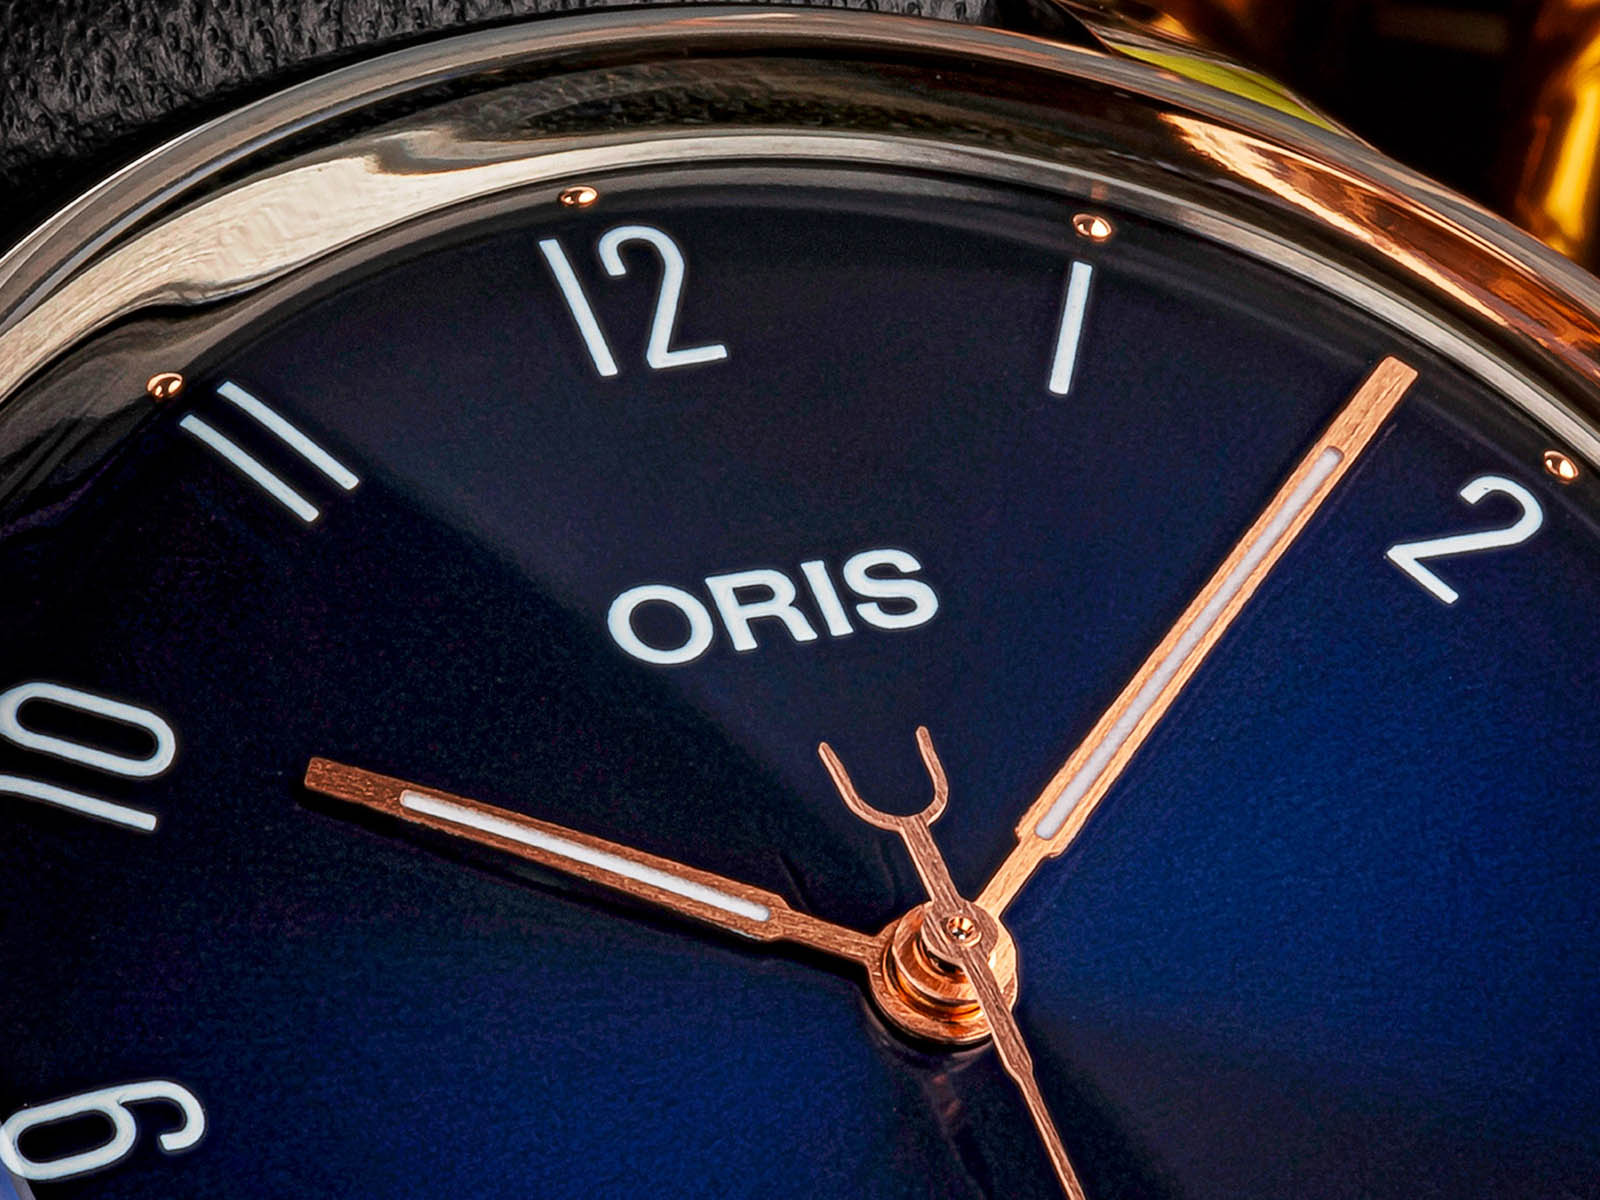 01-733-7762-4085-set-oris-james-morrison-academy-of-music-limited-edition-3.jpg